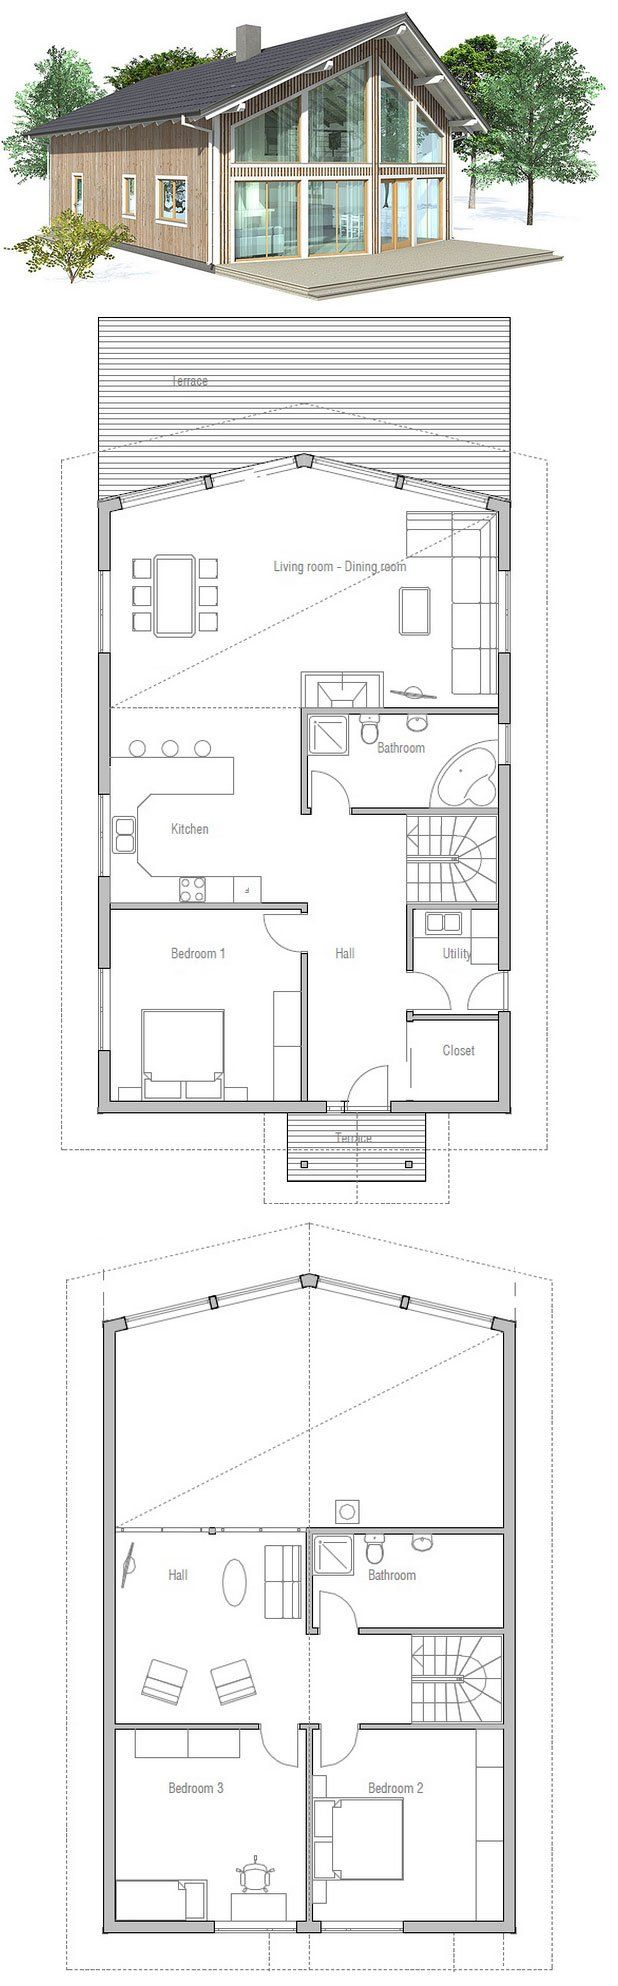 Small House Ch8 House Plans Small House Architecture Small House Plans